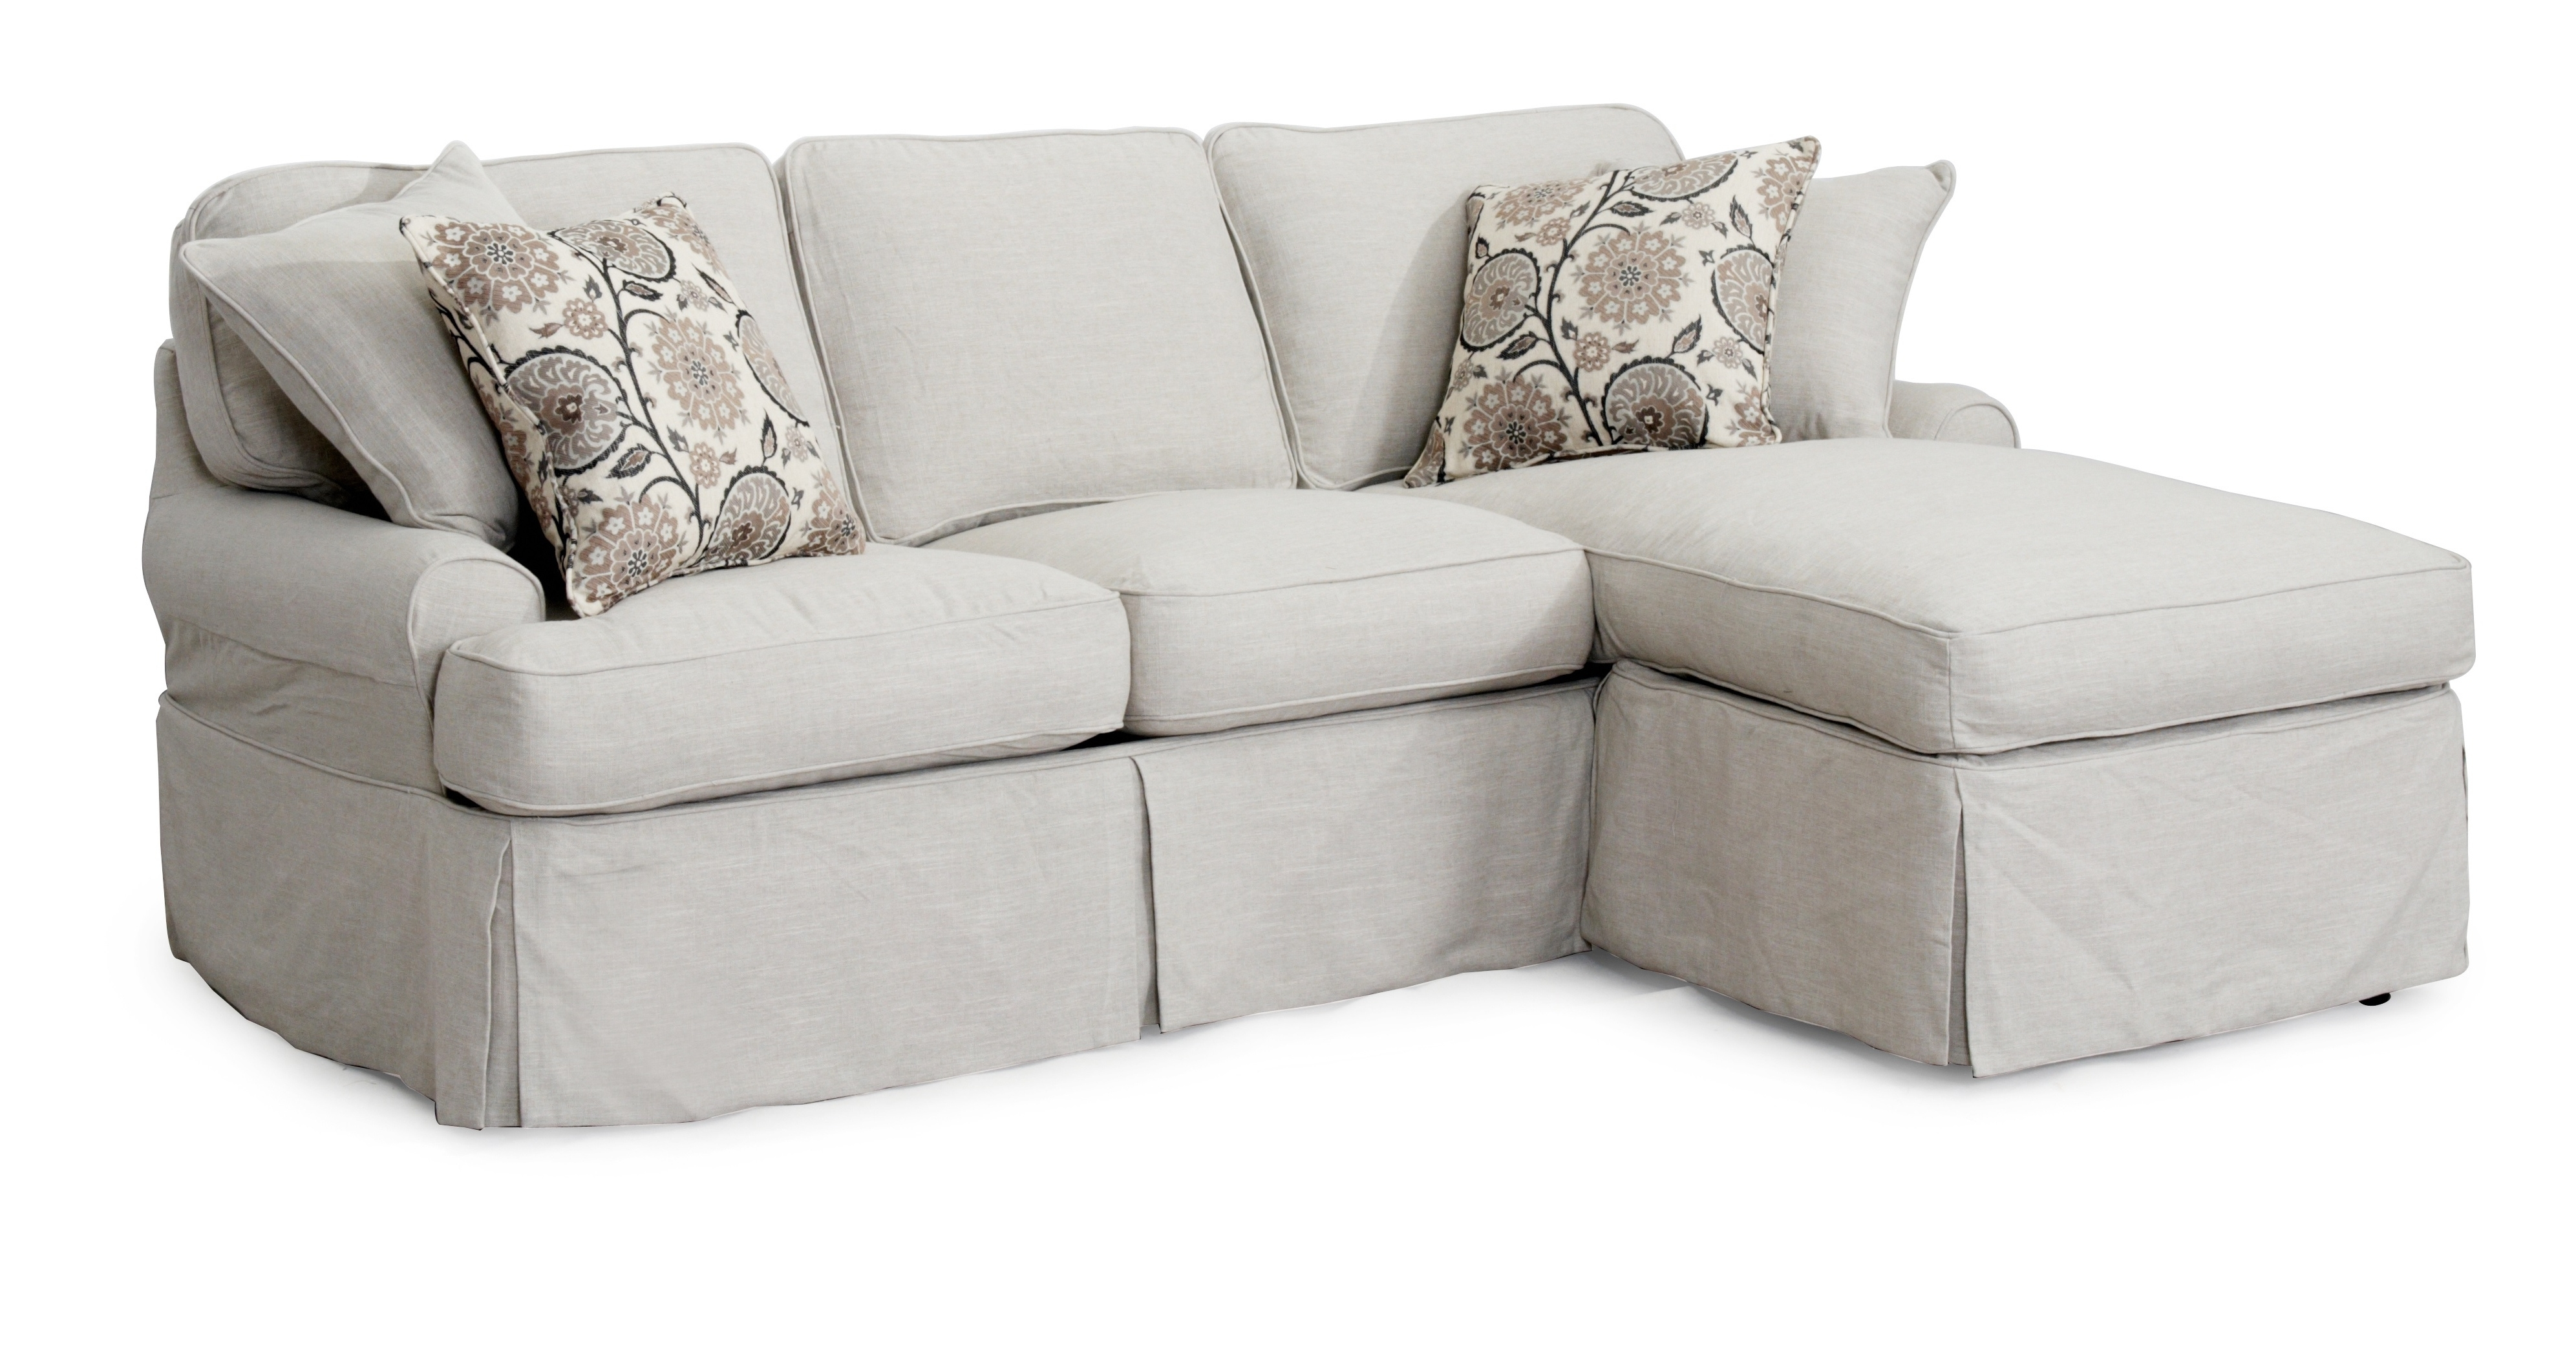 Best And Newest Decorating Interesting Walmart Slipcovers For Living Room Grey Inside Grey Sofa Chaises (View 2 of 15)